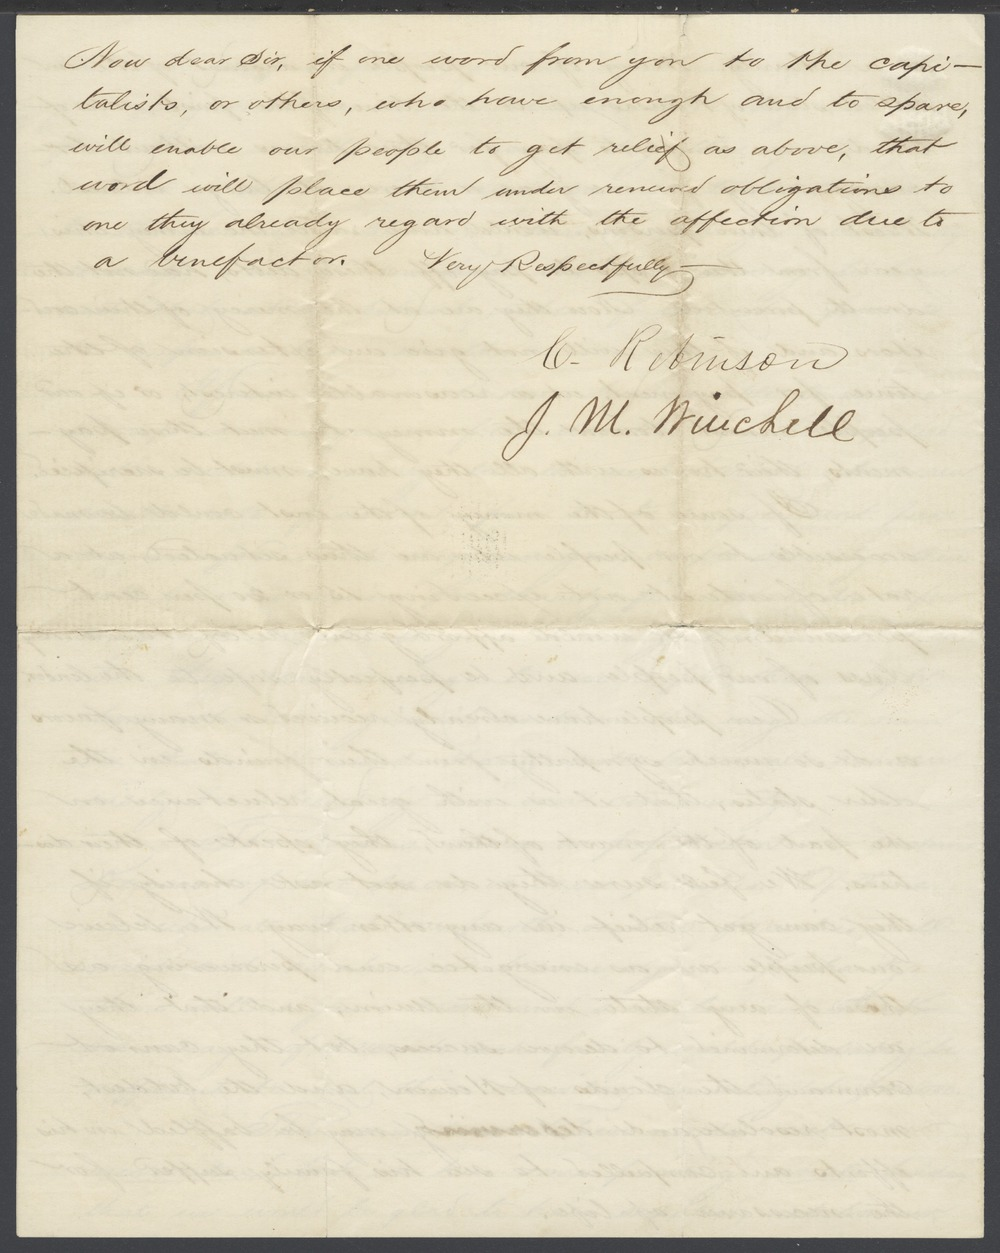 Charles Robinson and James M. Winchell to William H. Seward - 4